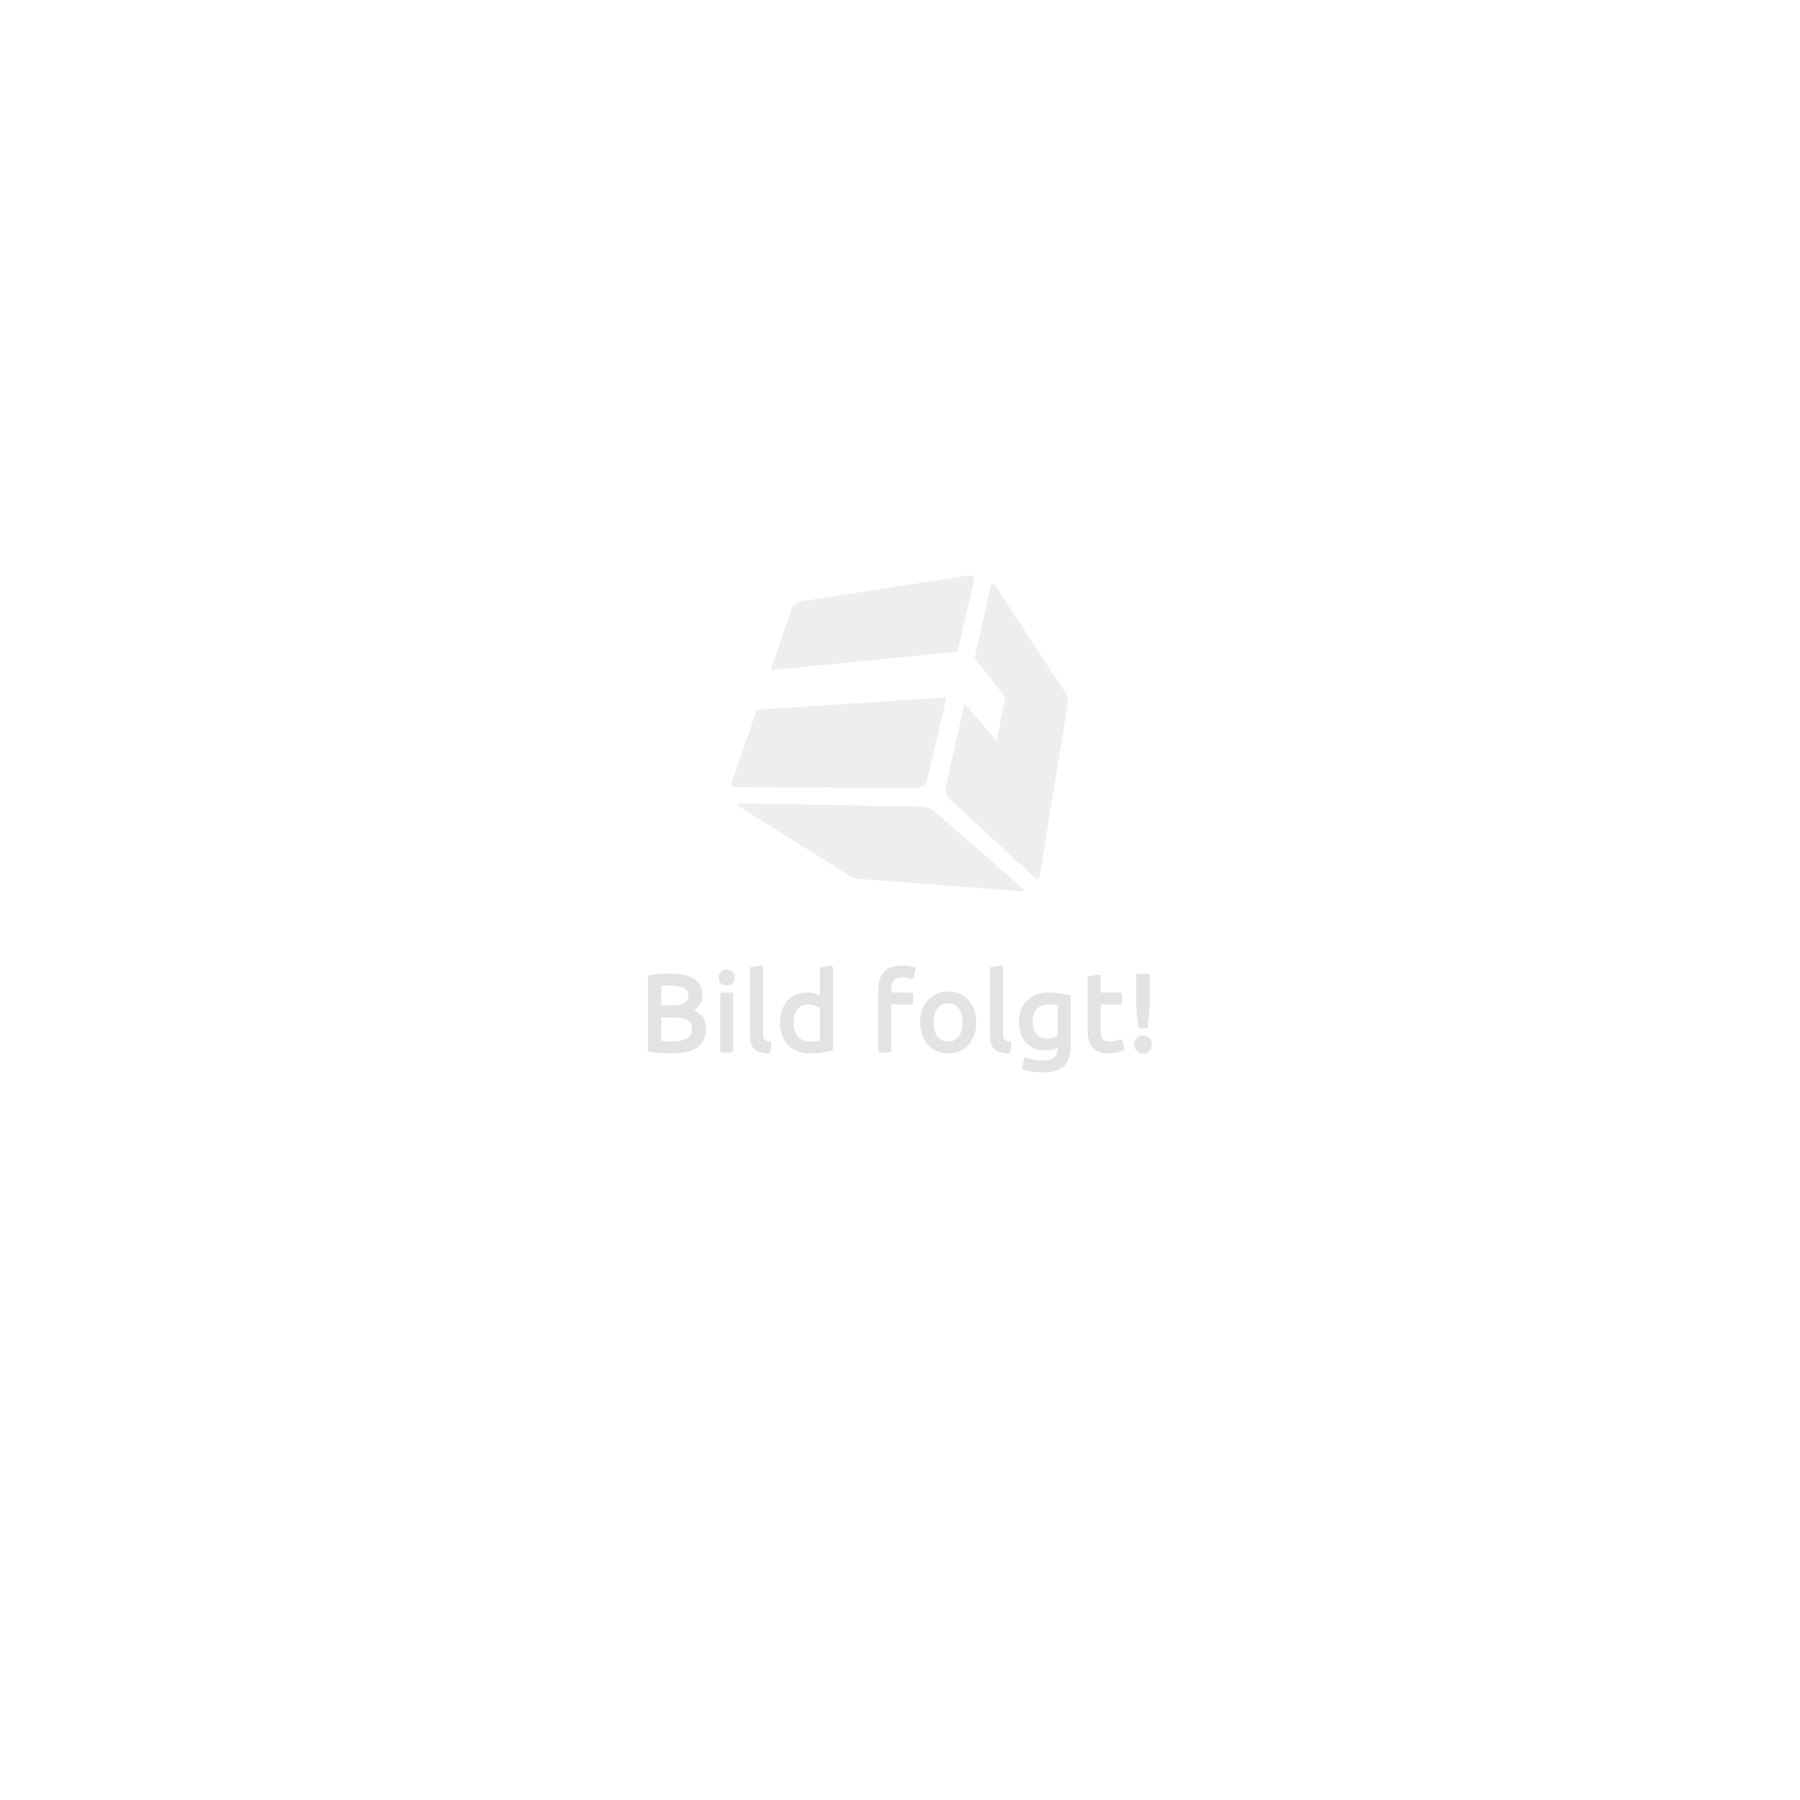 Camping bed black